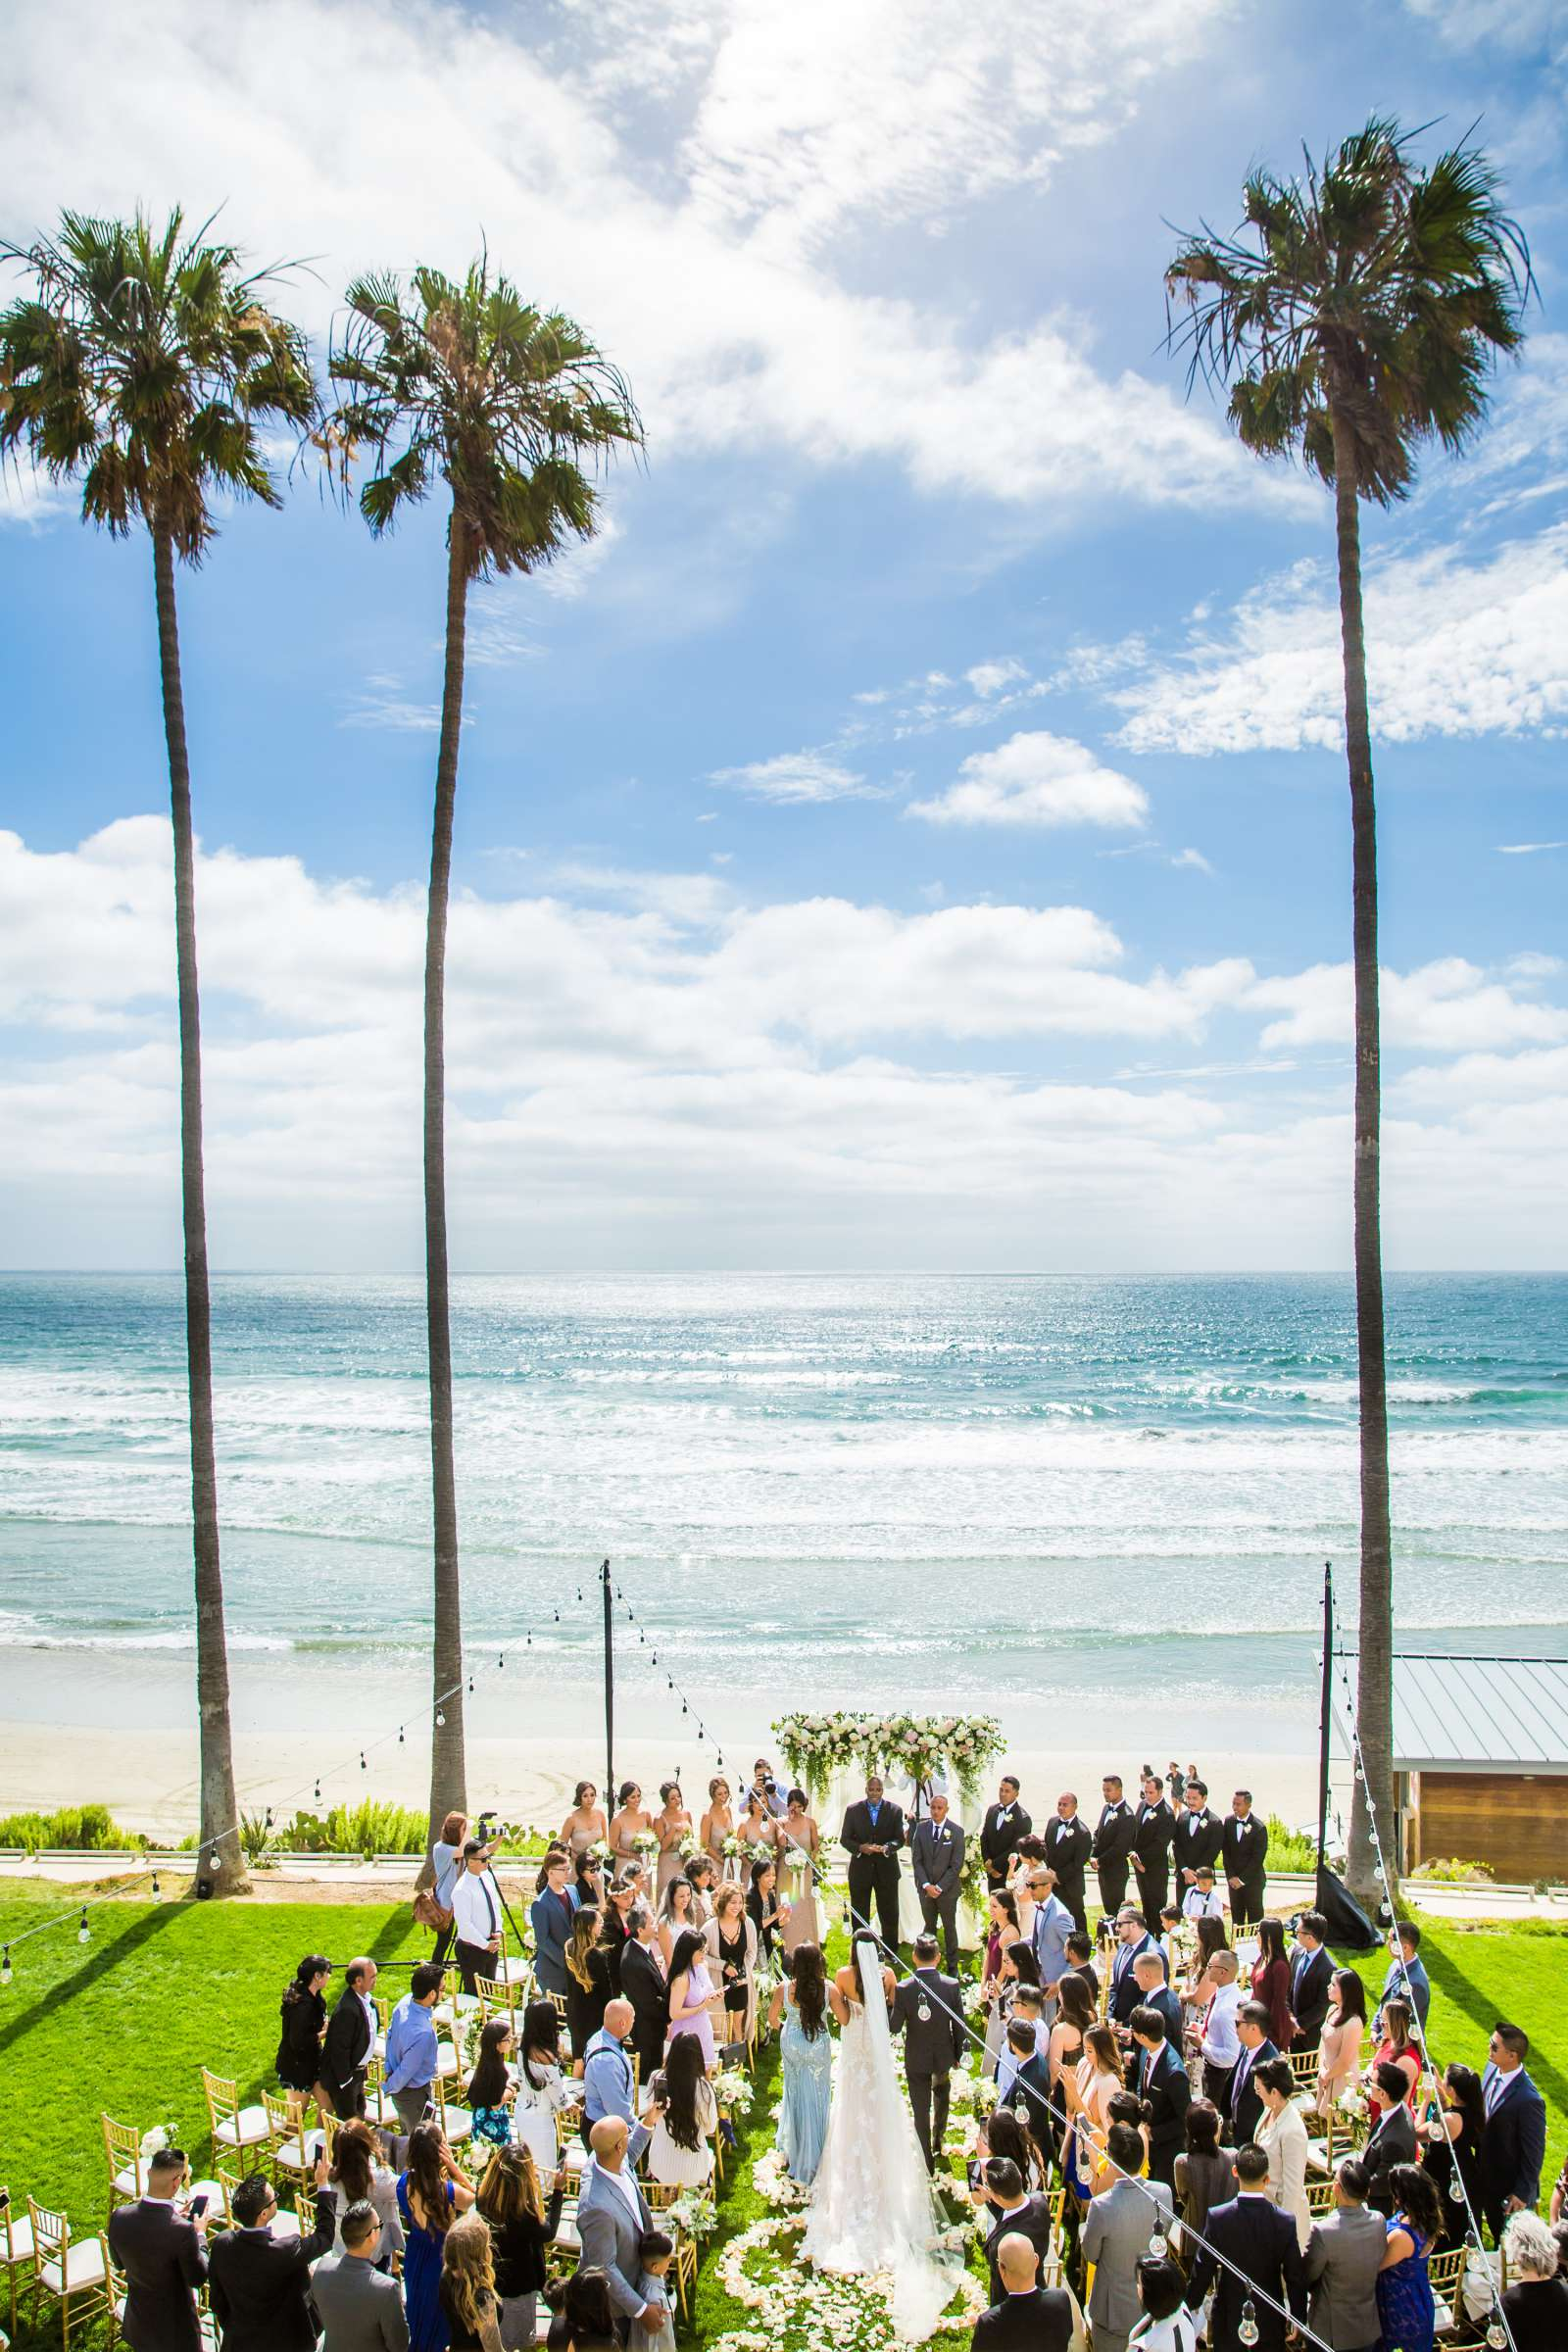 Scripps Seaside Forum Wedding coordinated by Lavish Weddings, Cindy and Justin Wedding Photo #381817 by True Photography